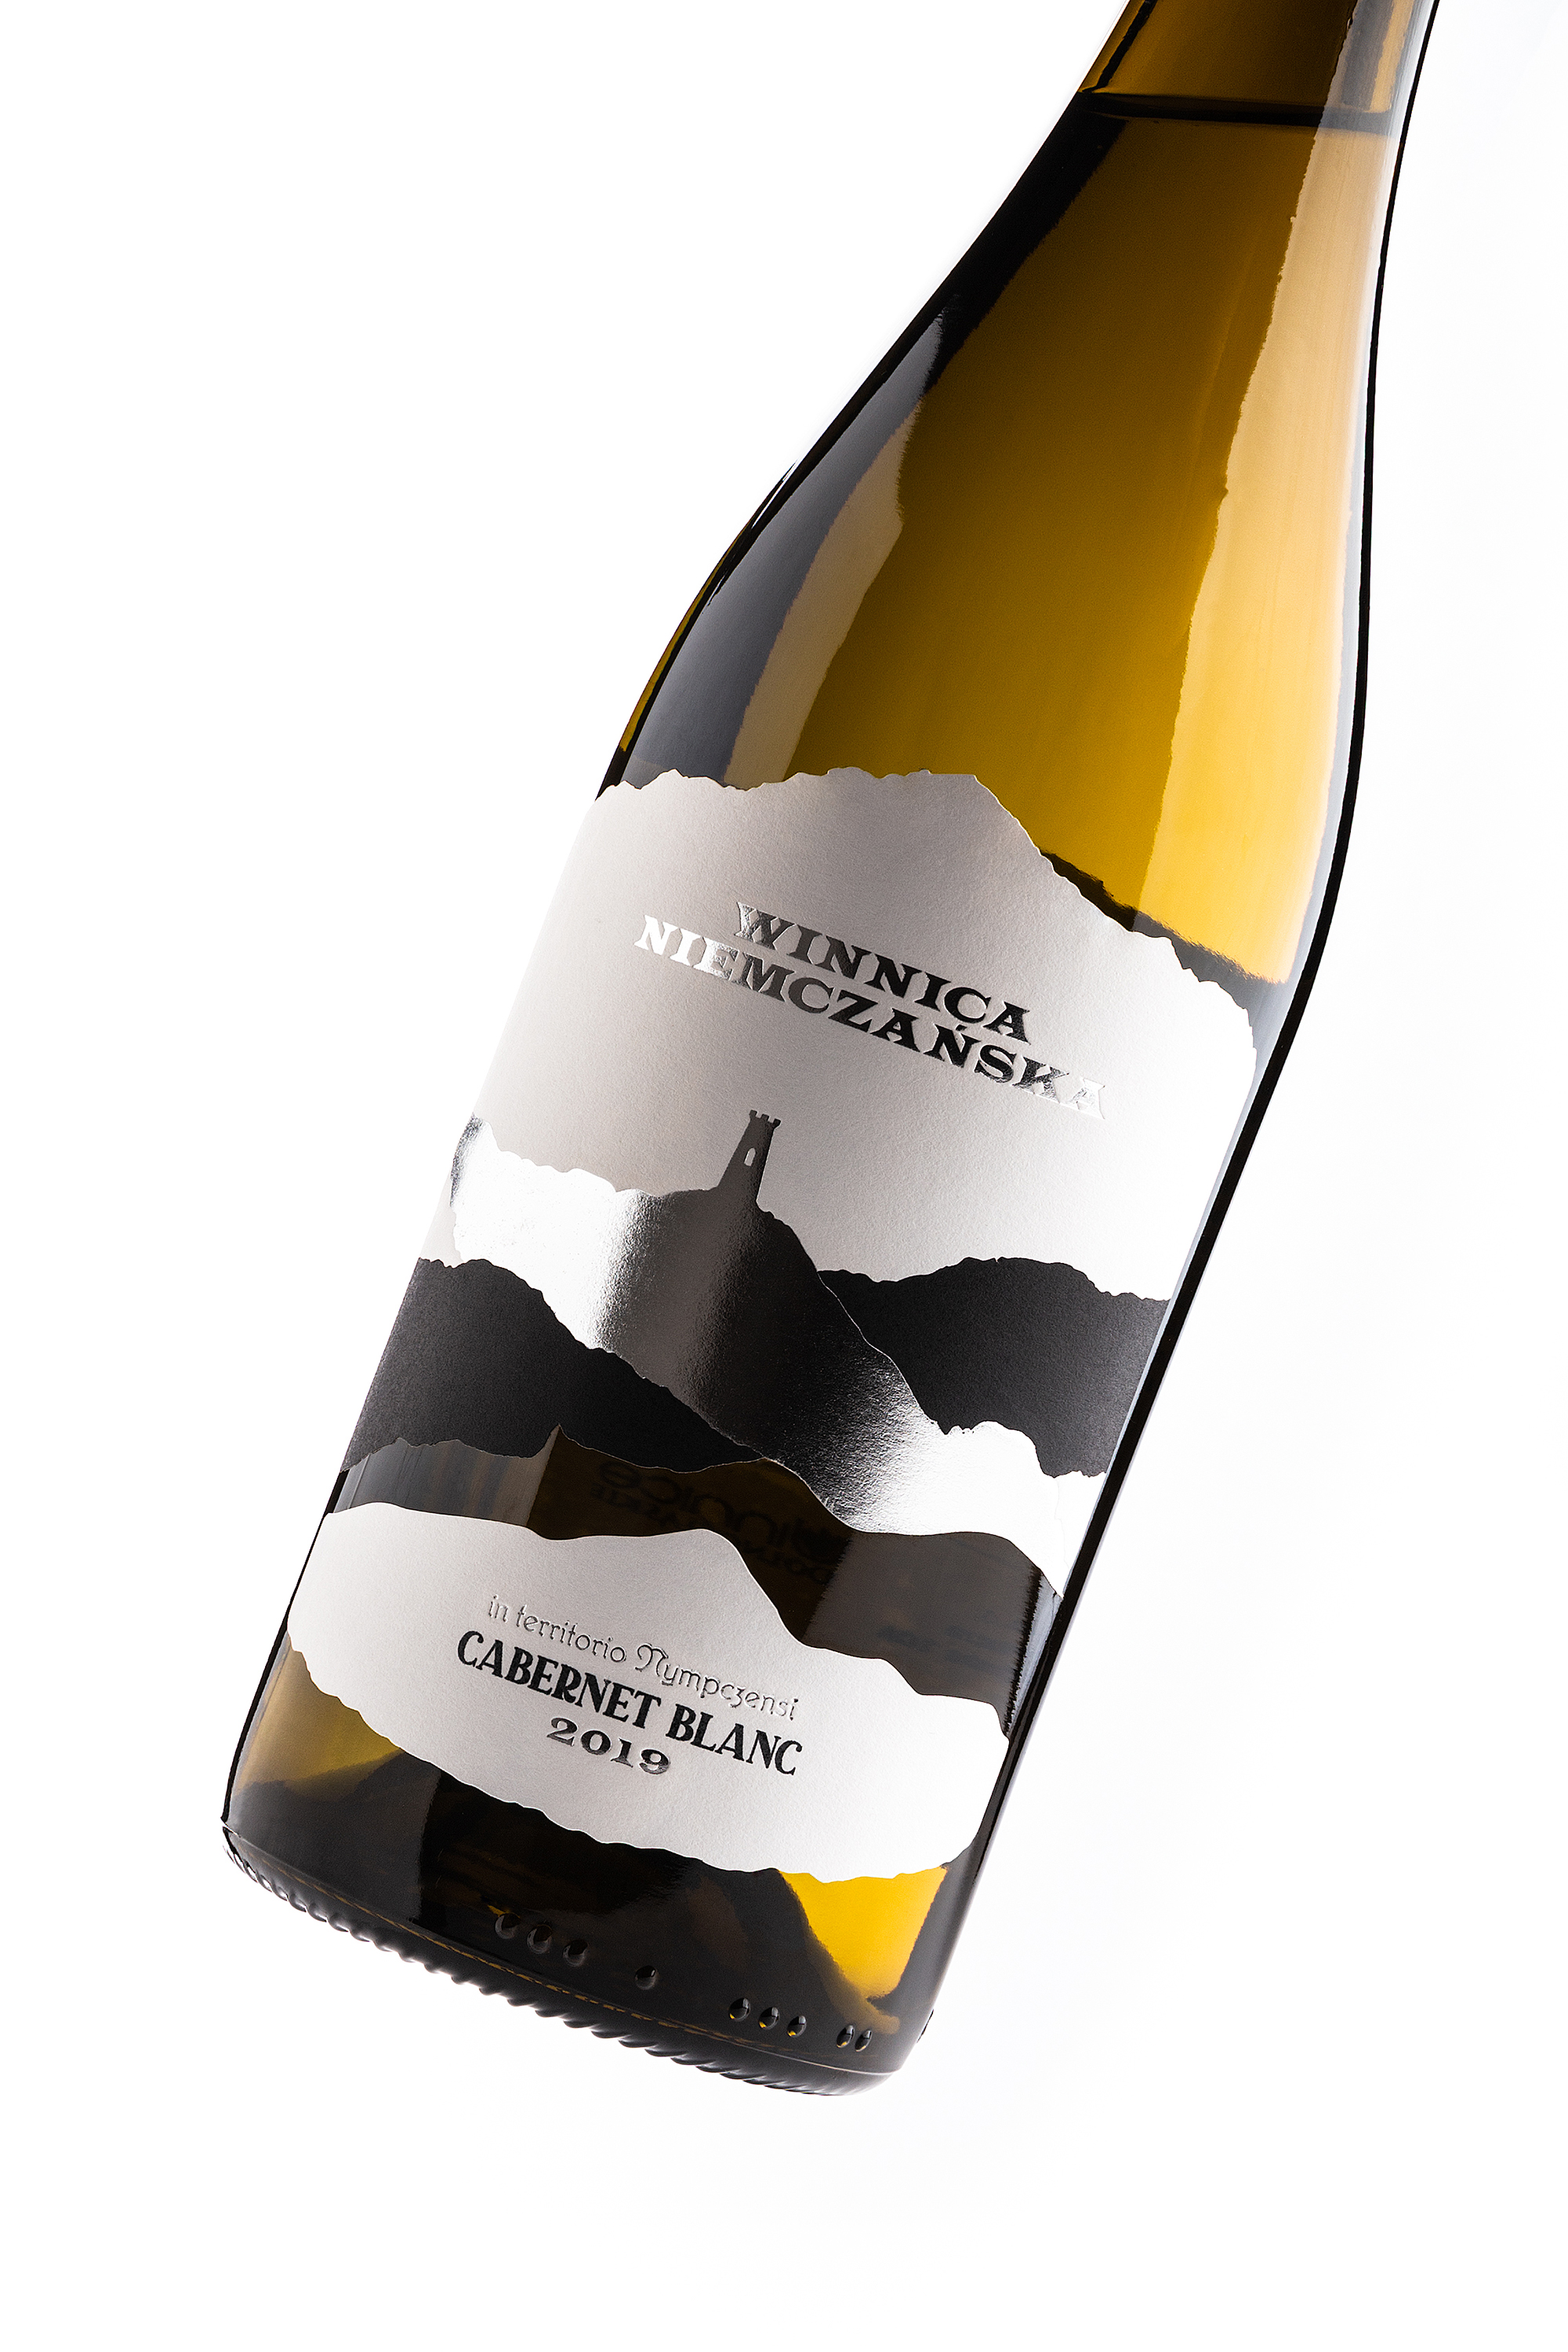 Foxtrot Studio Create Label Design for Winnica Niemczańska Pinot Noir Chardonnay